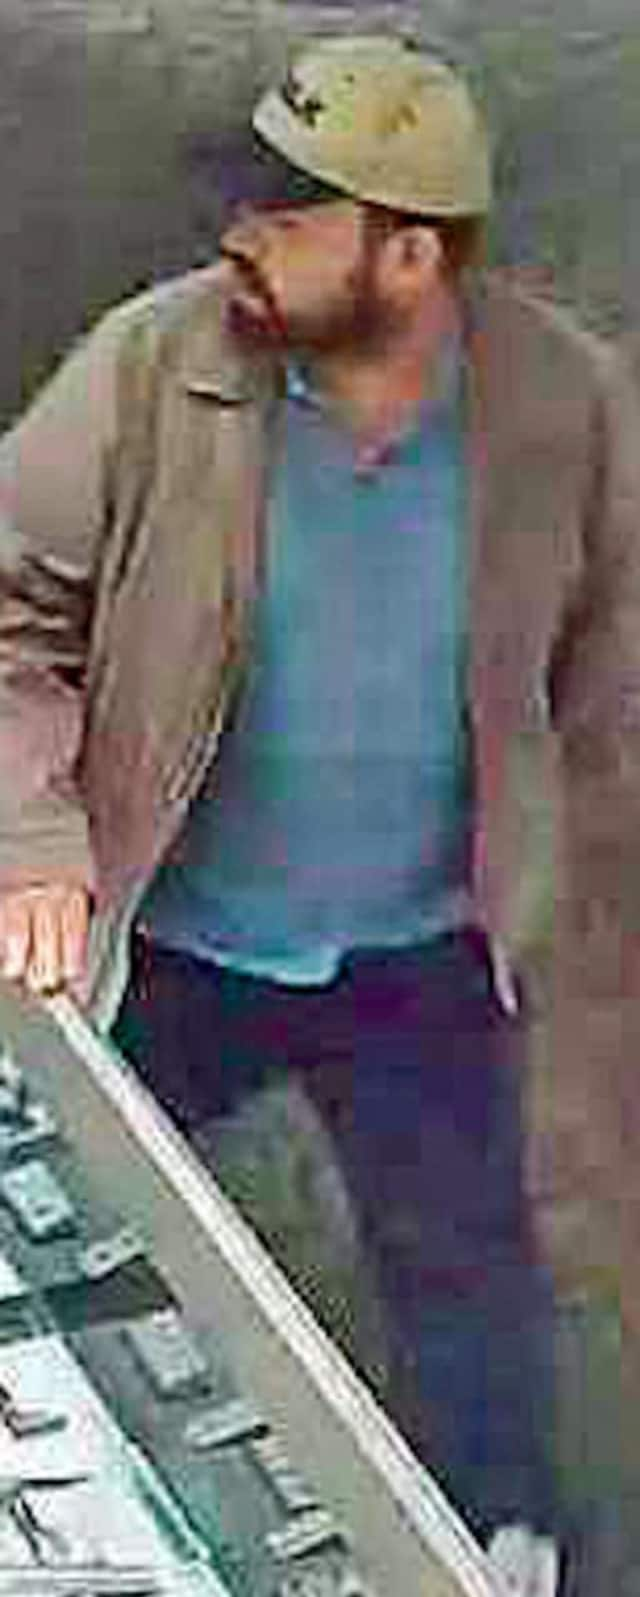 Port Chester police released this image of an armed robbery suspect who stole nearly $13,000 in gold and diamond rings on Monday night at Kay/Sterling Jewelers at The Waterpfront at Port Chester.